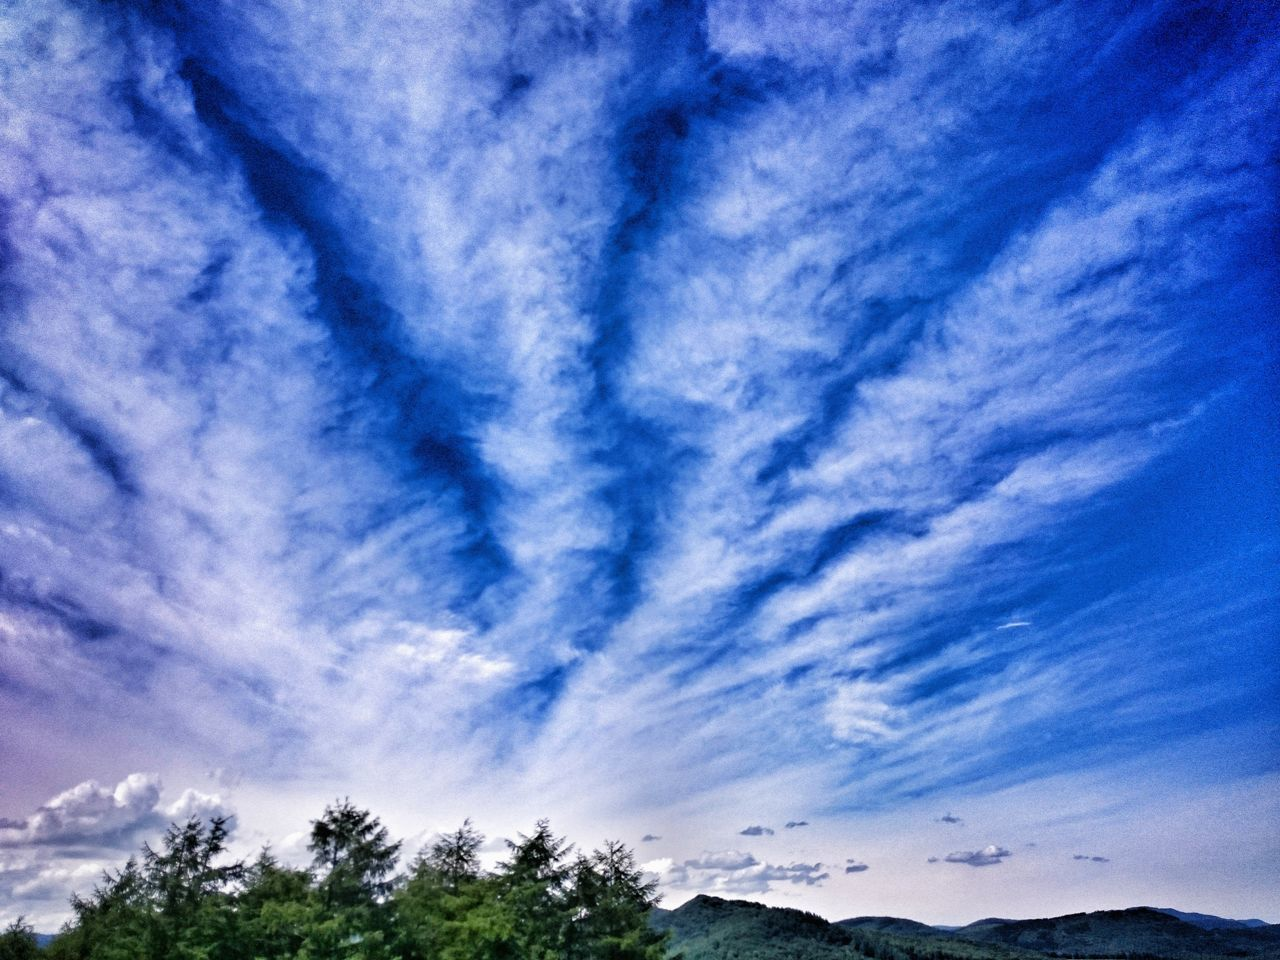 sky, cloud - sky, beauty in nature, scenics, blue, nature, tree, no people, tranquility, low angle view, day, outdoors